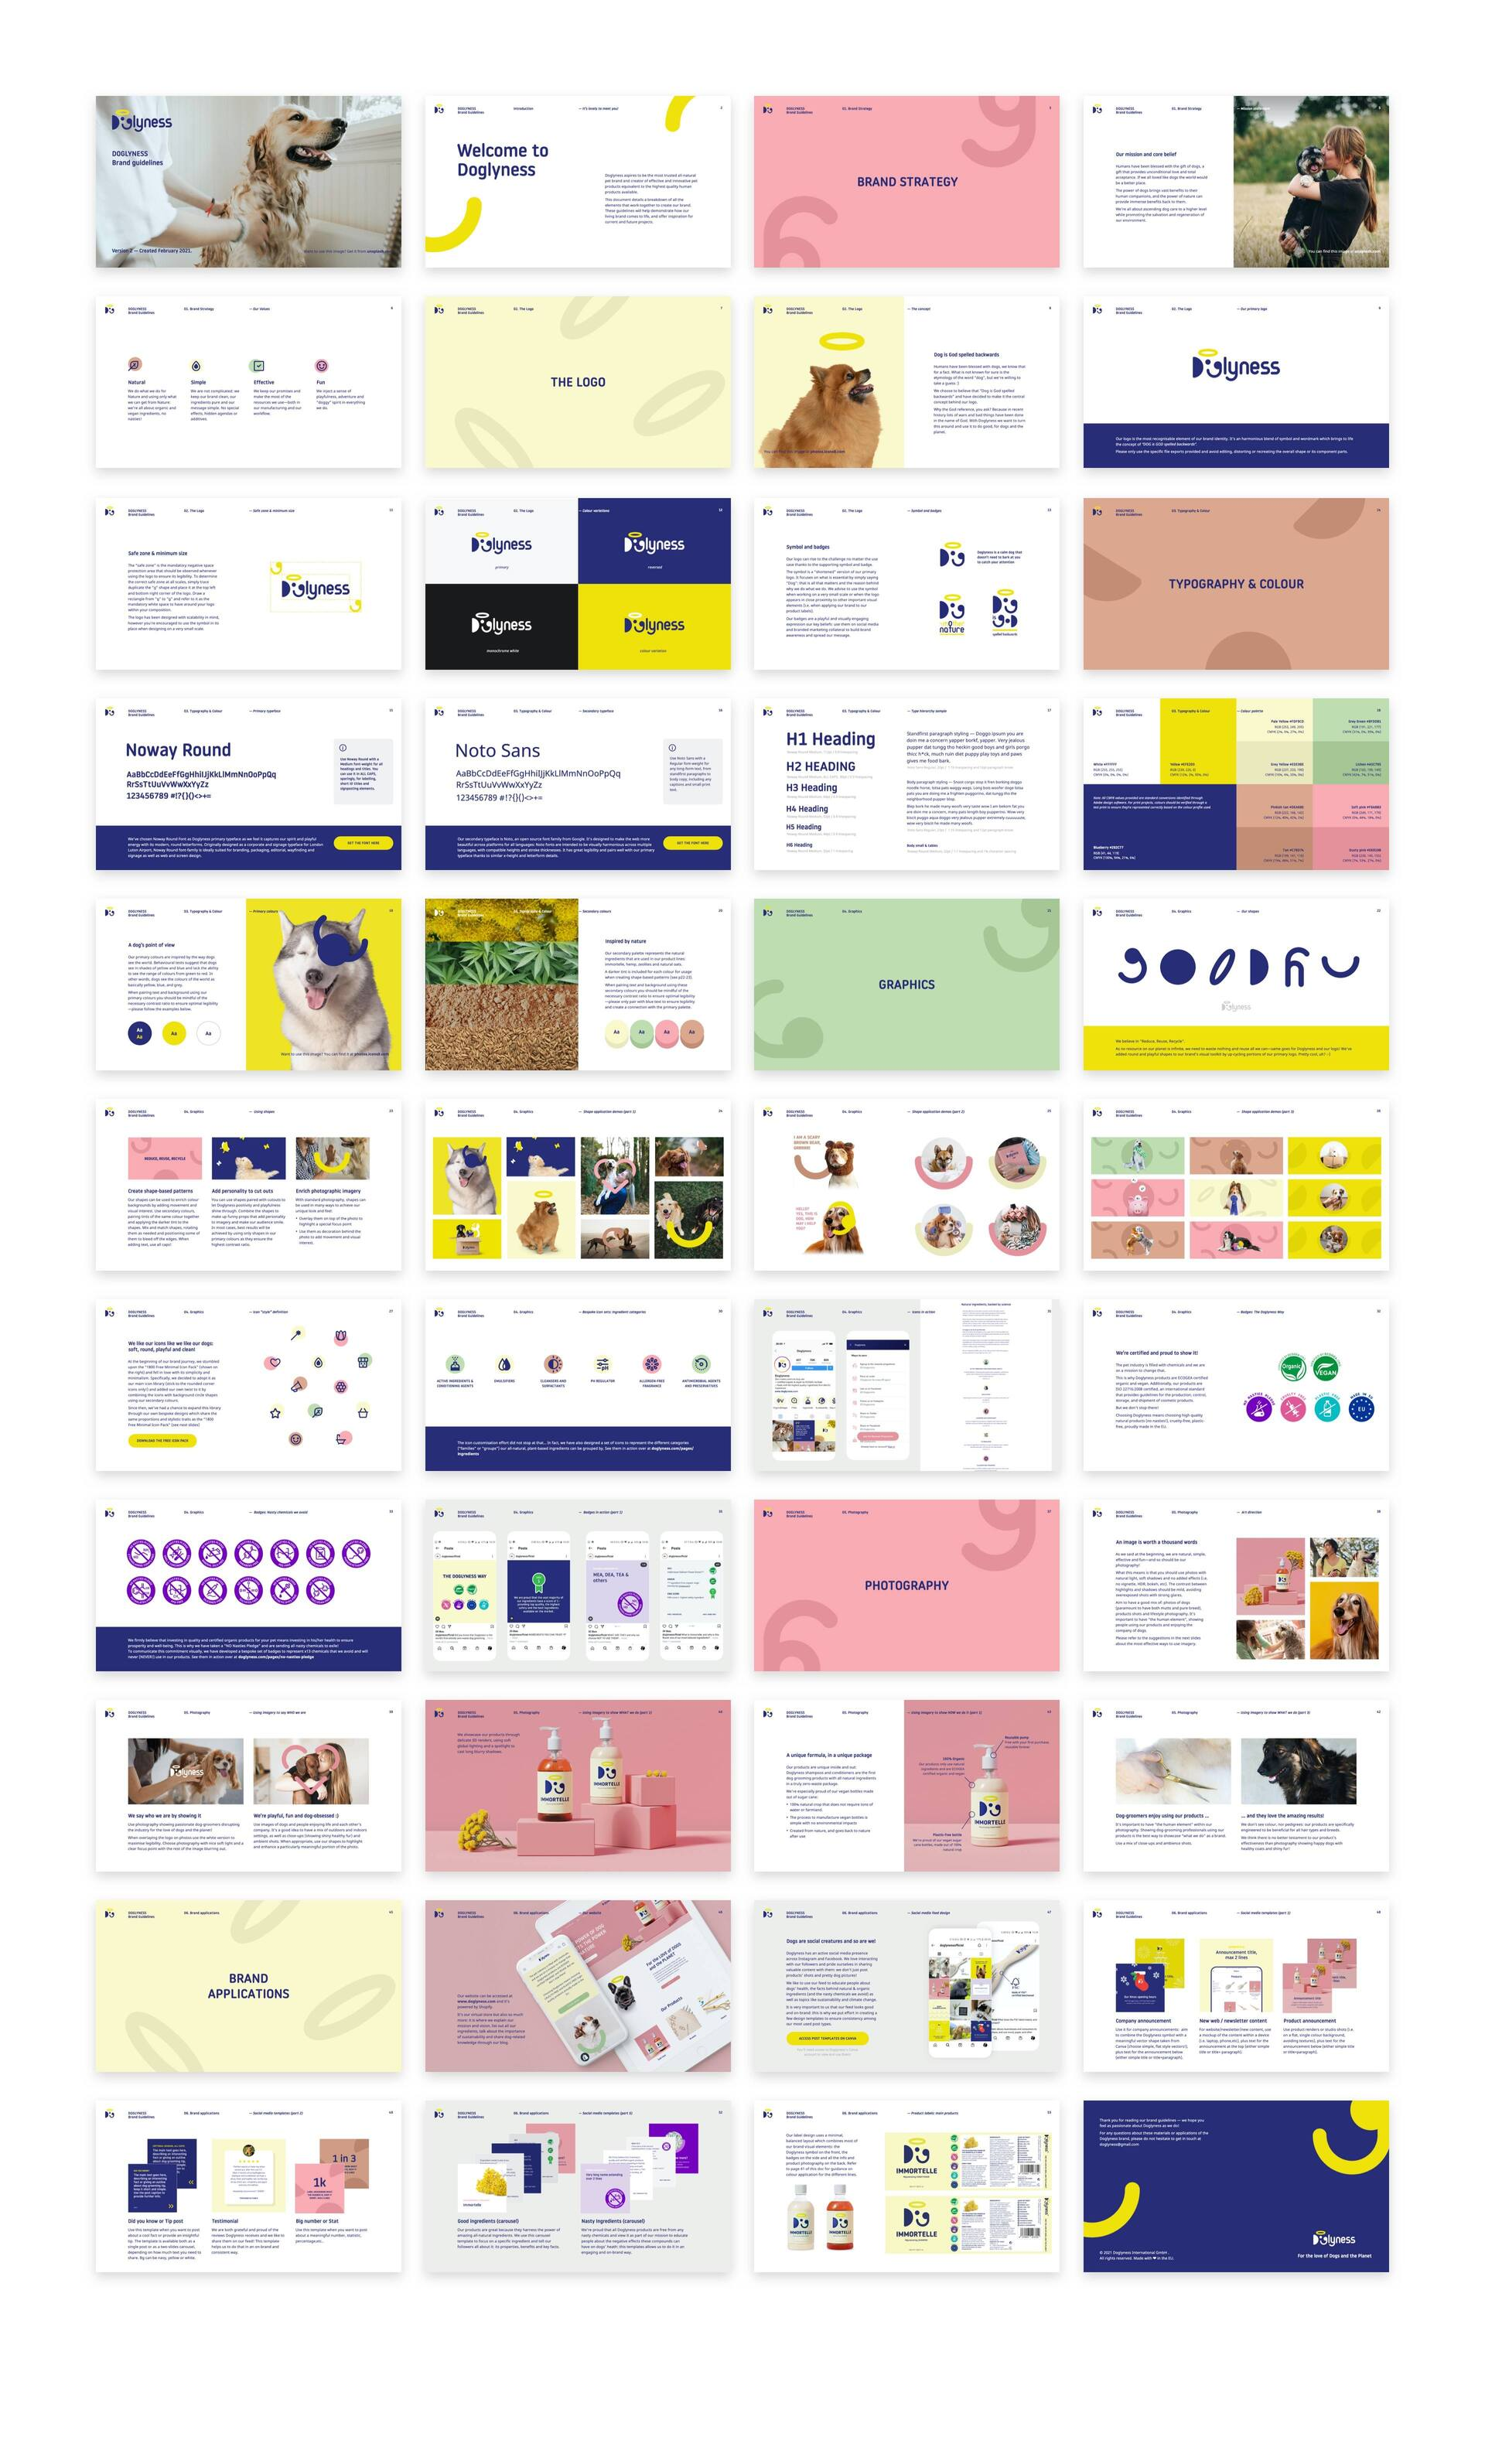 Brand guidelines document for Doglyness